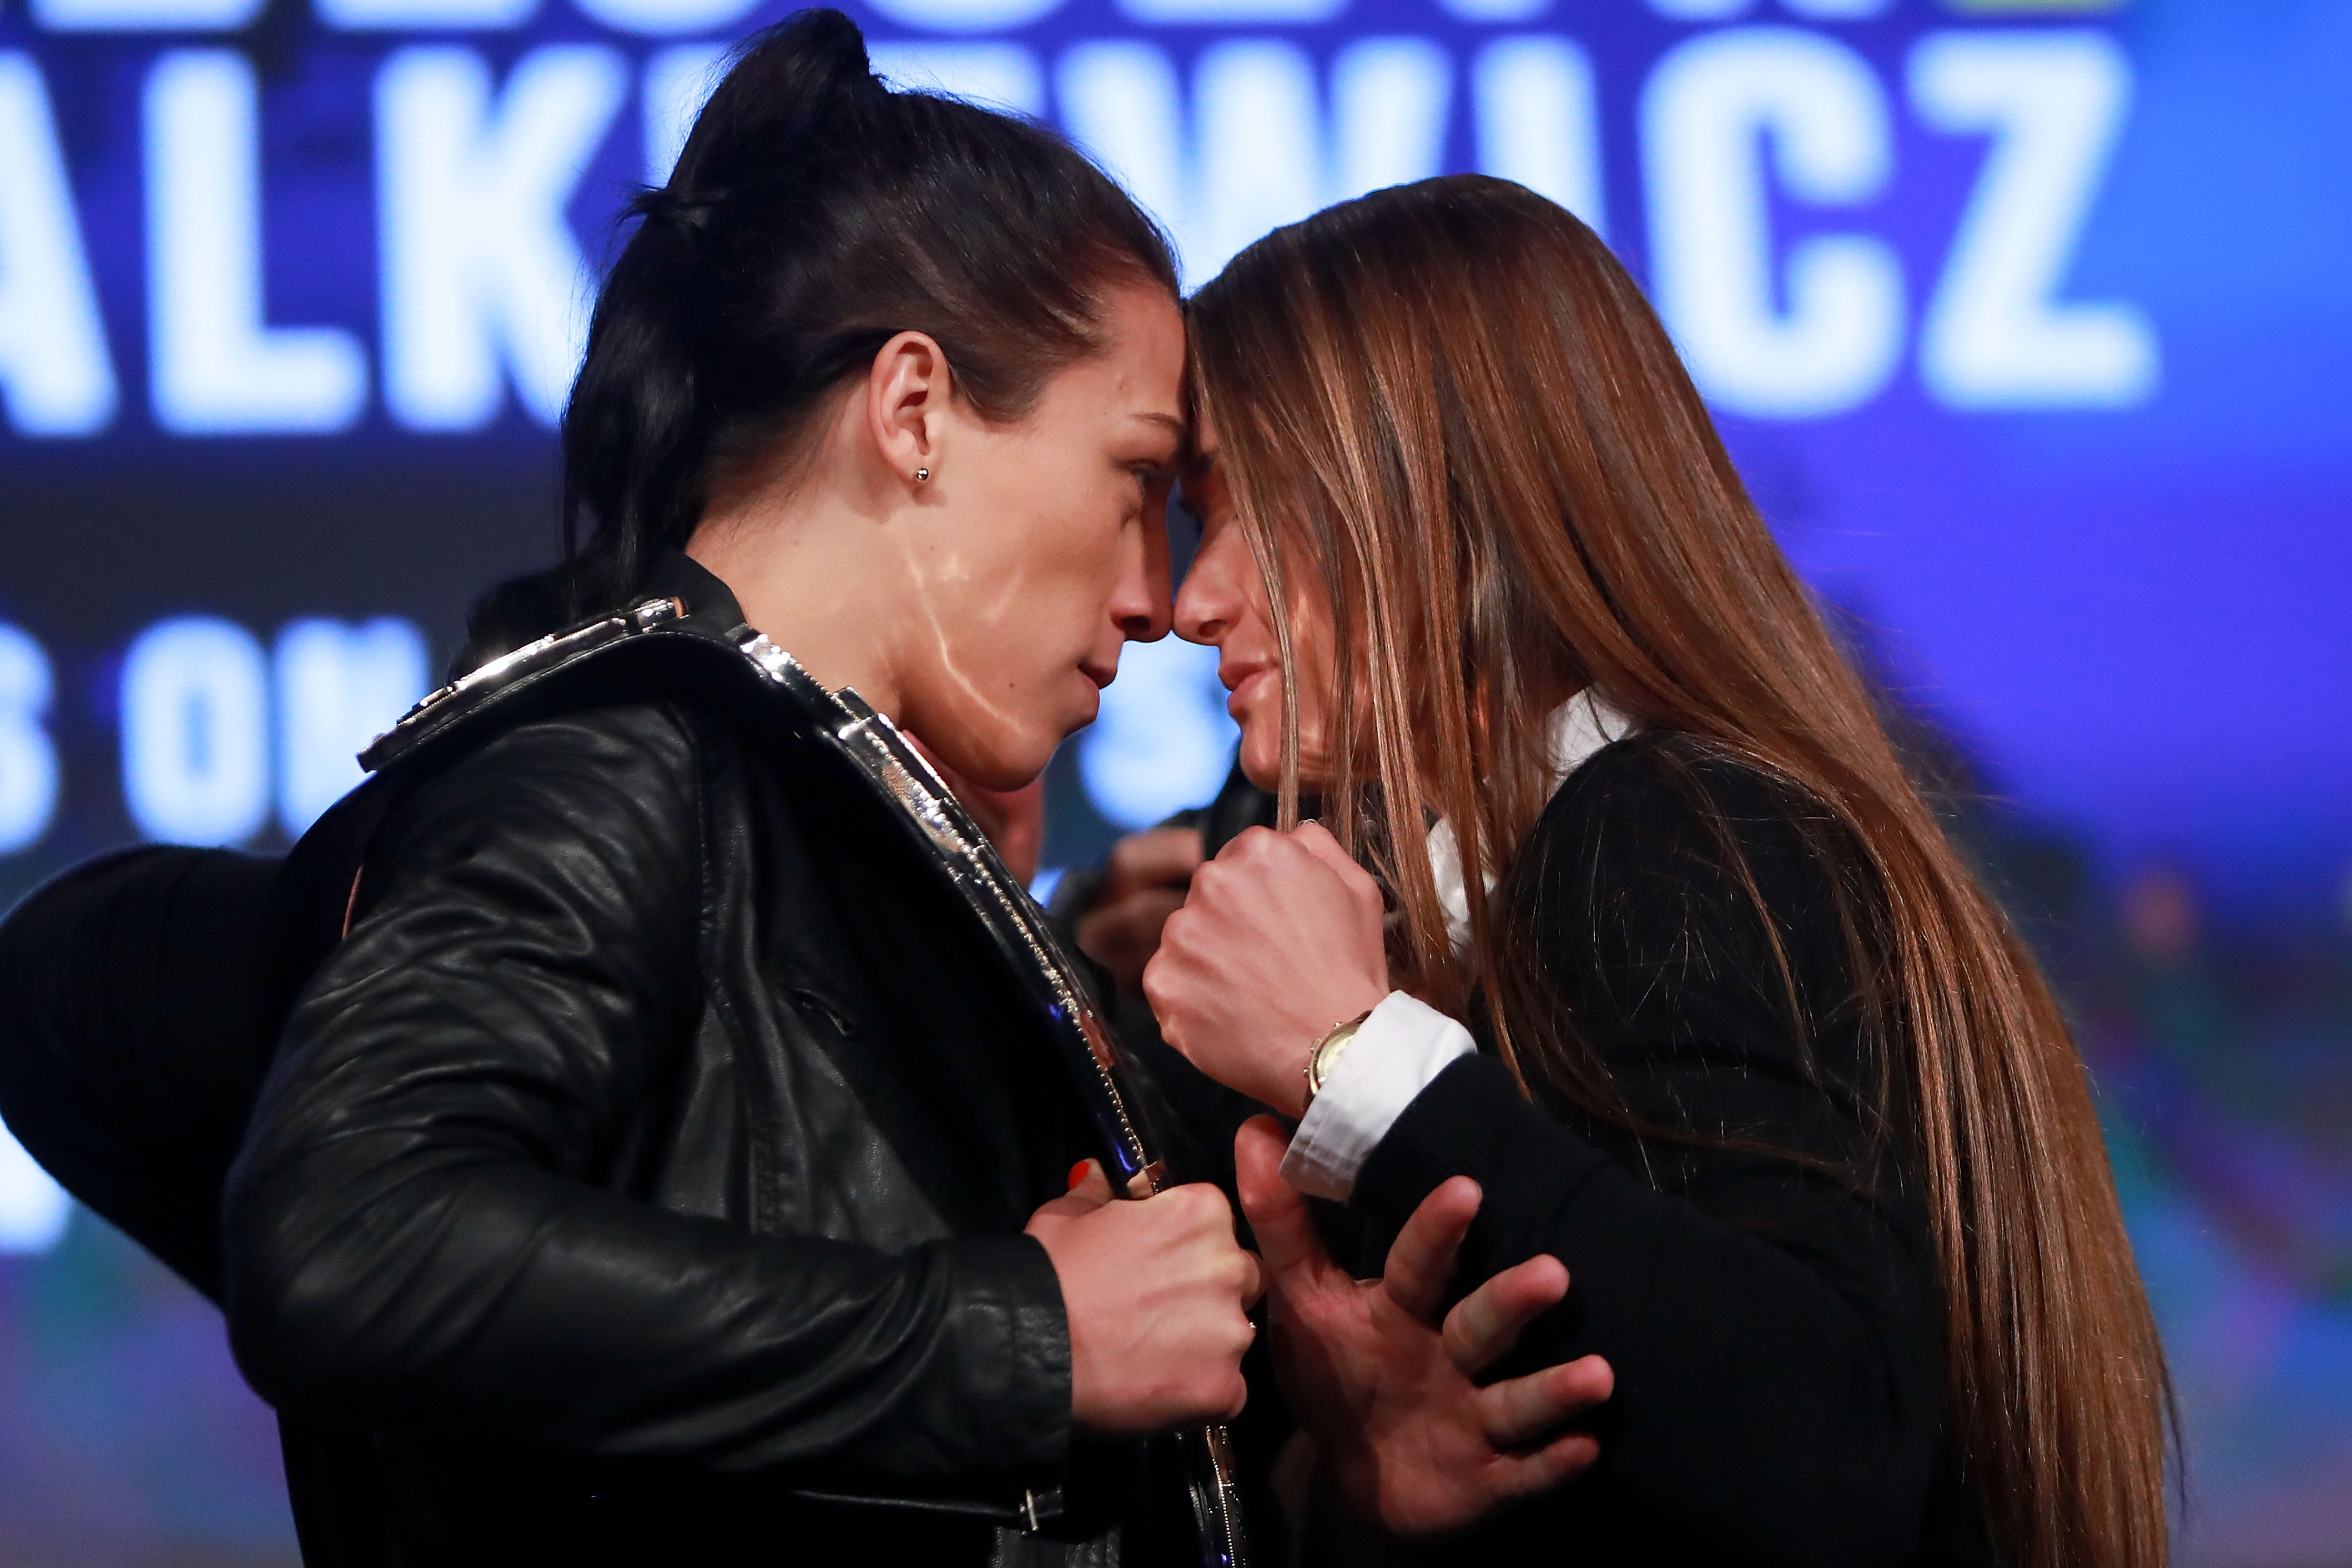 Joanna Jedrzejczyk (left) hopes to defend her UFC strawweight title against challenger Karolina Kowalkiewicz (right)